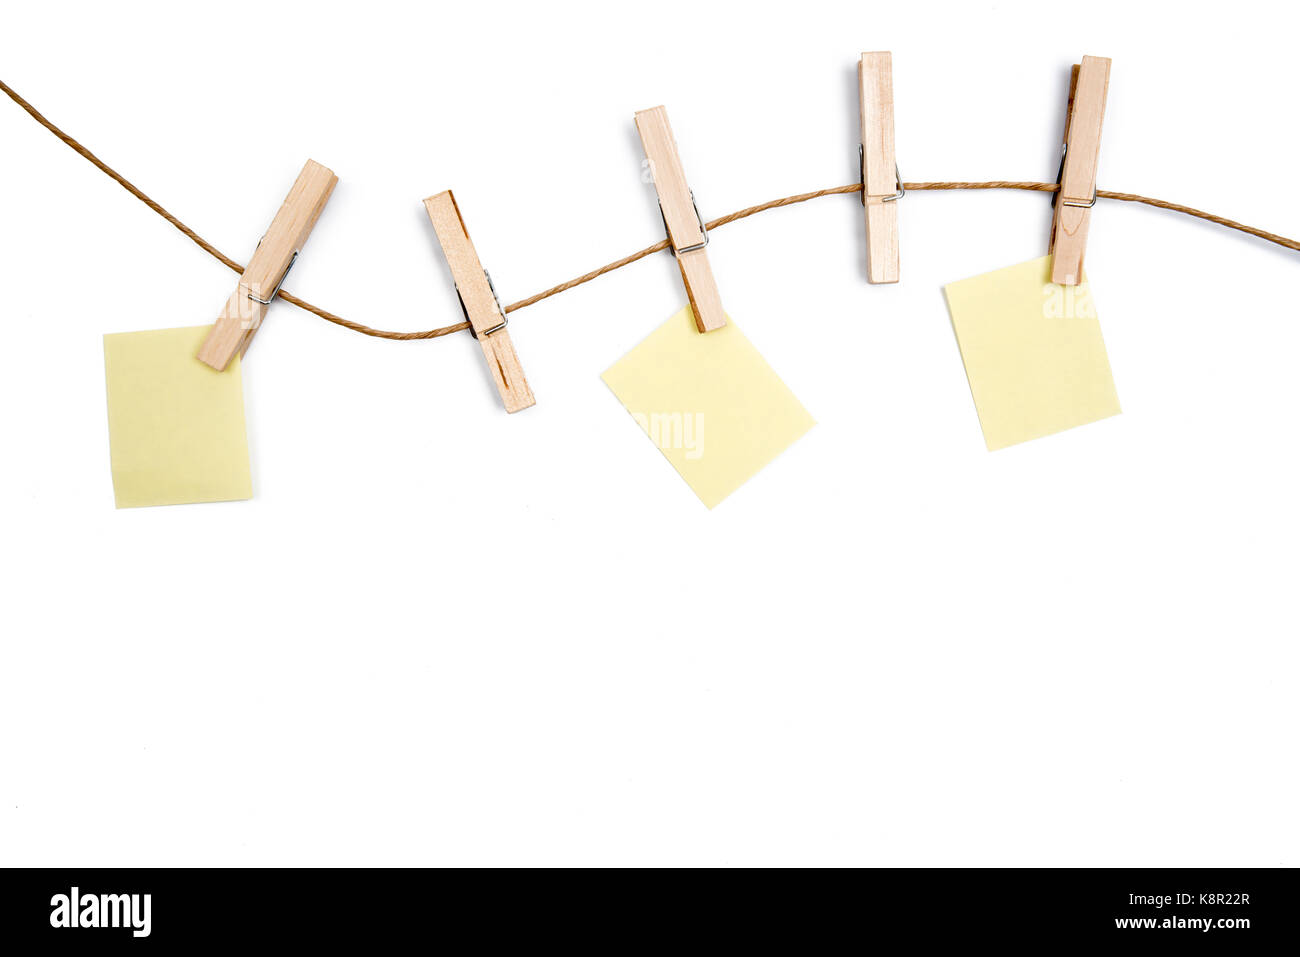 Blank Memo Papers On Rope With Clothespins, On White Backgrounds